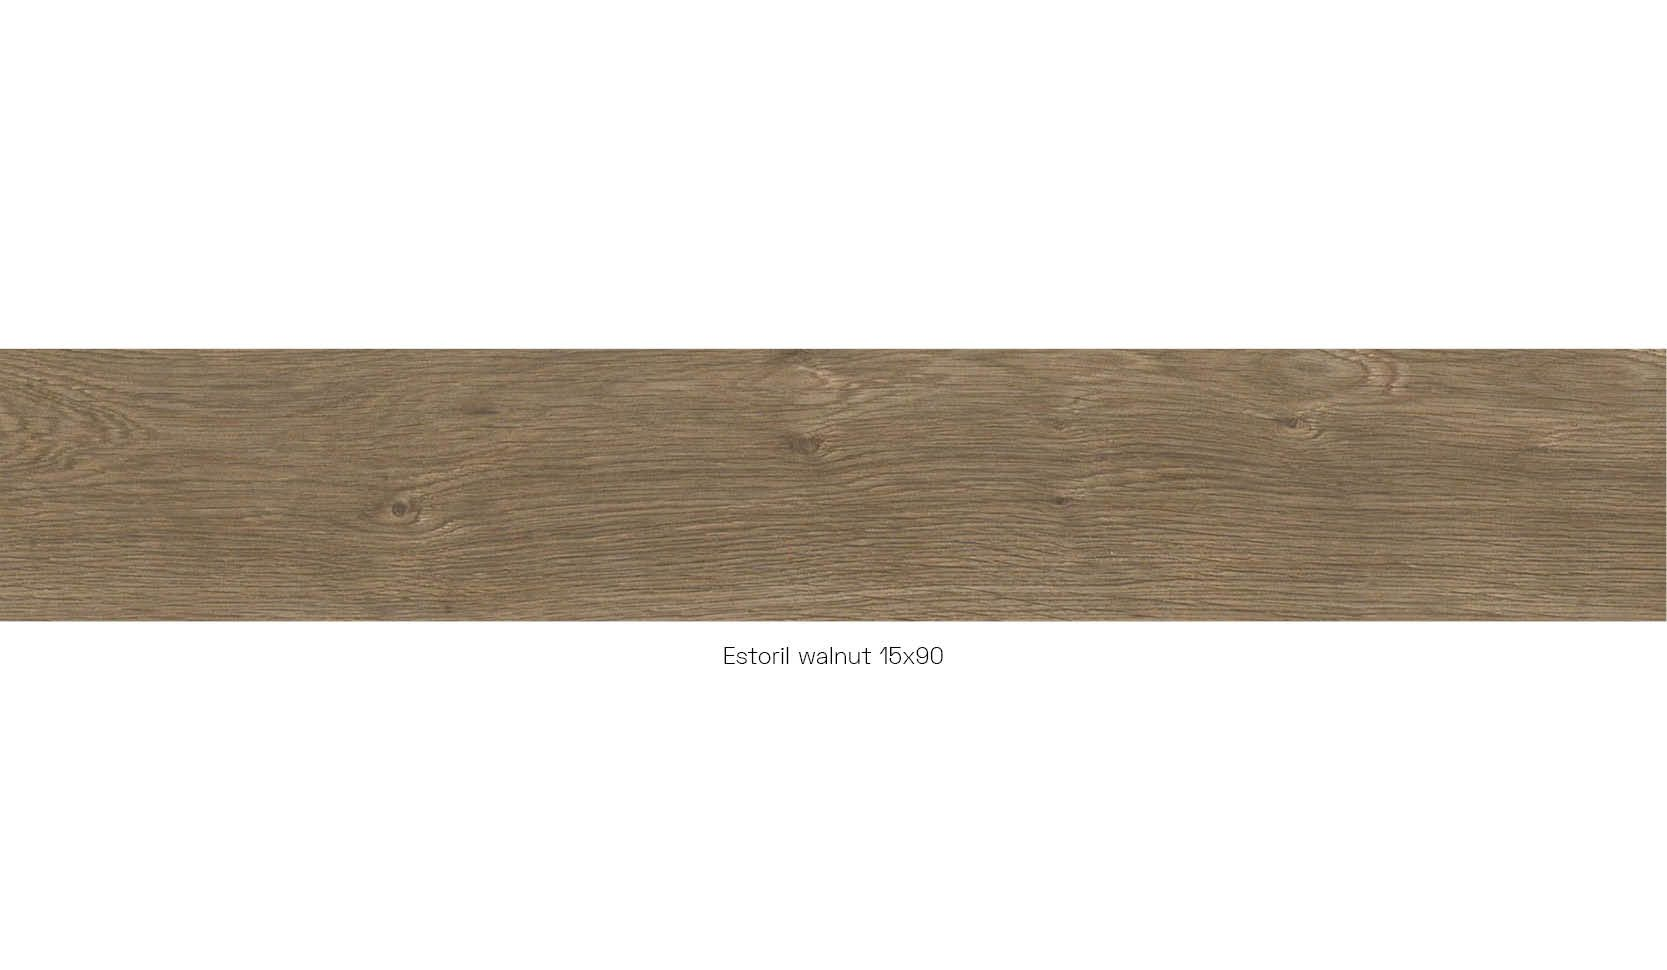 Estoril walnut 15 x 90